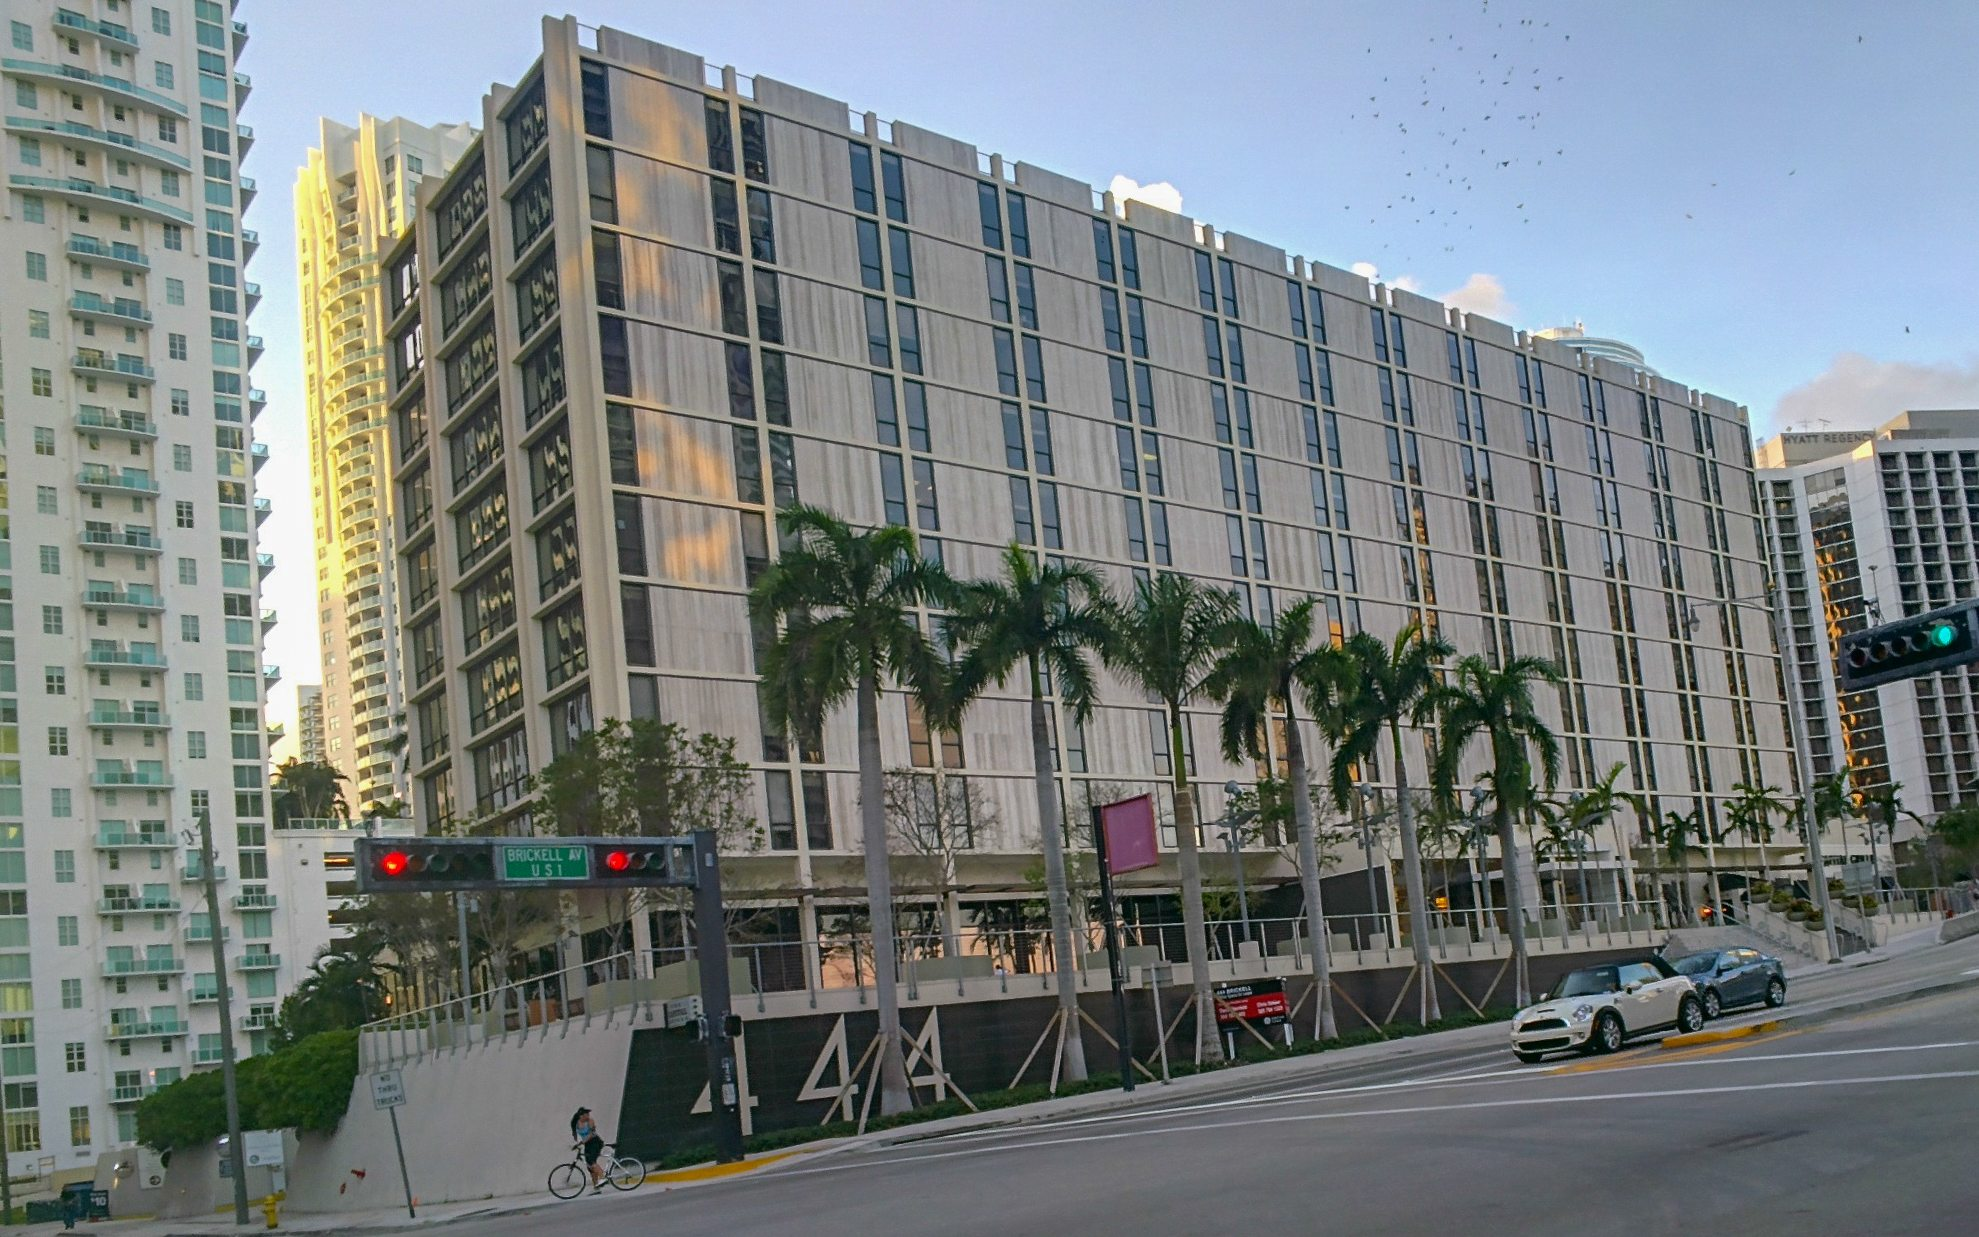 Related Group Acquires 444 Brickell for $100M